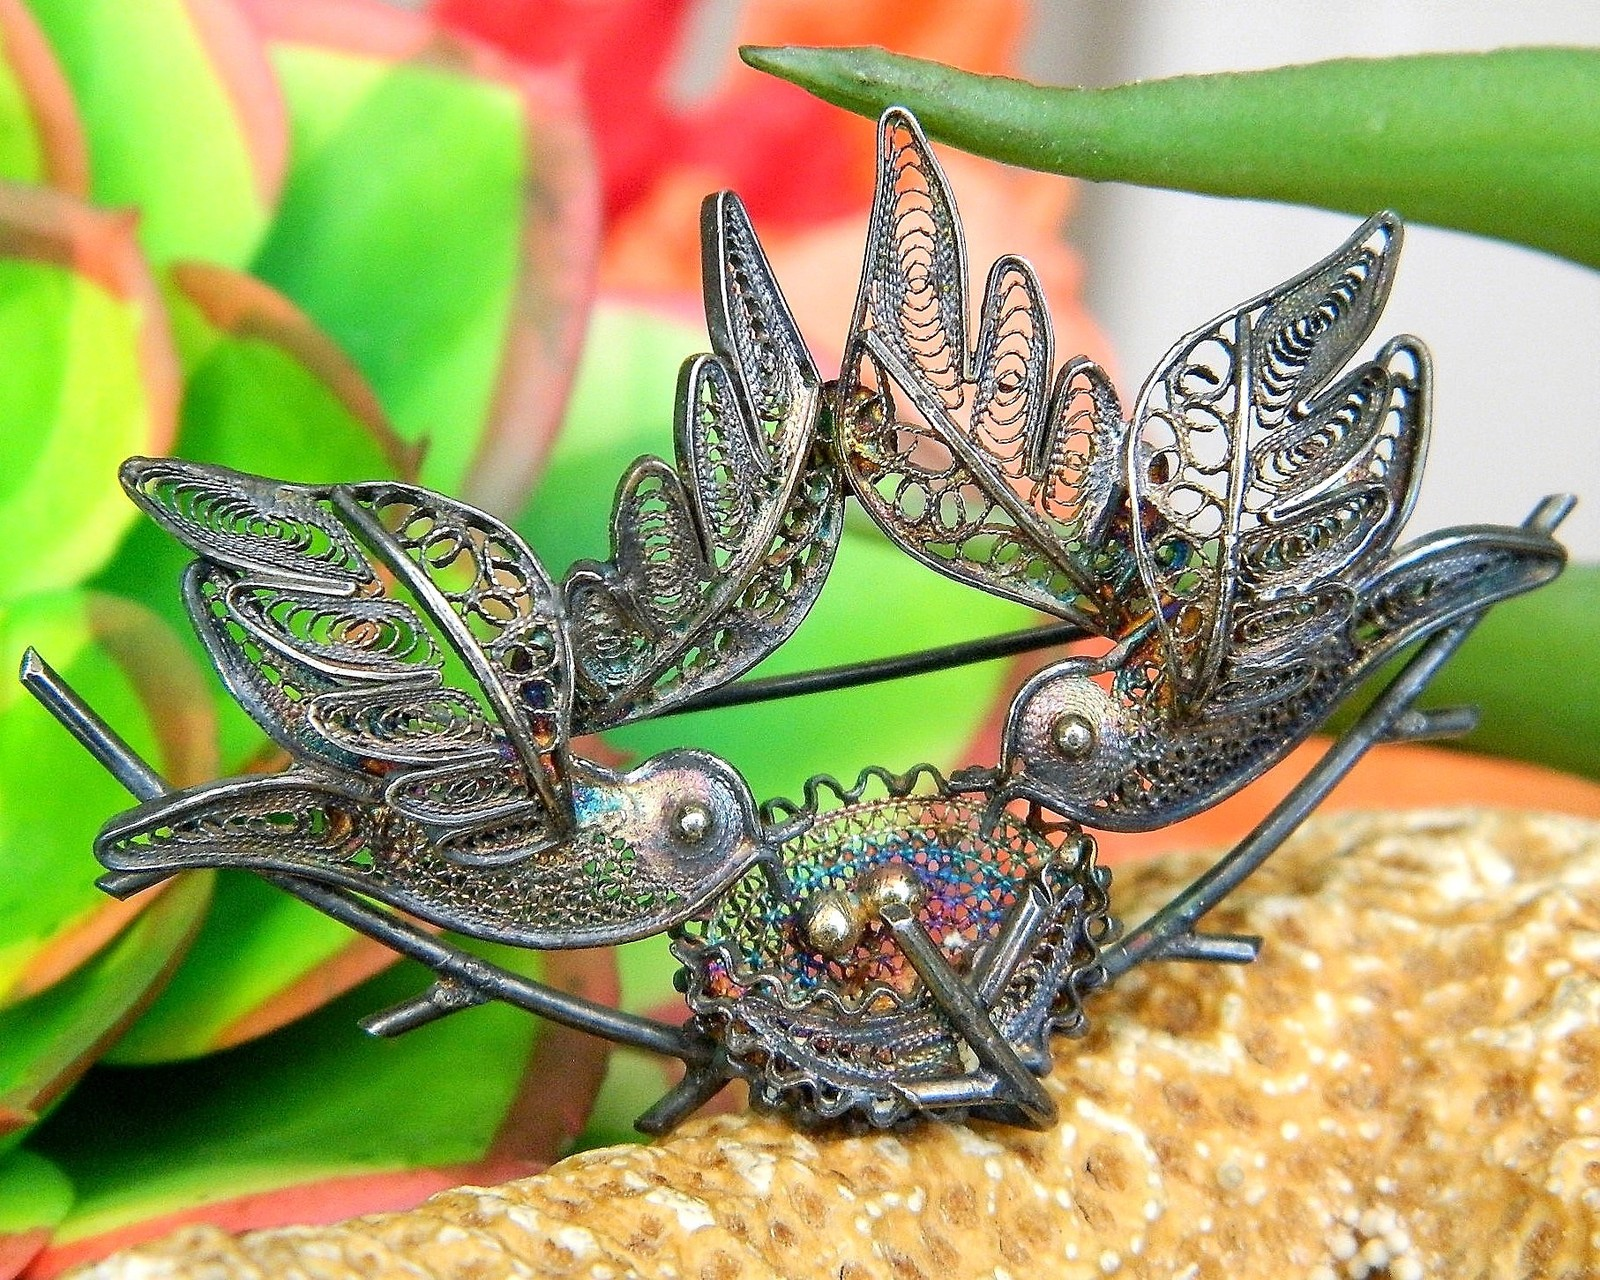 Primary image for Vintage Filigree Duet Two Birds Flying Nest Eggs 800 Silver Brooch Pin